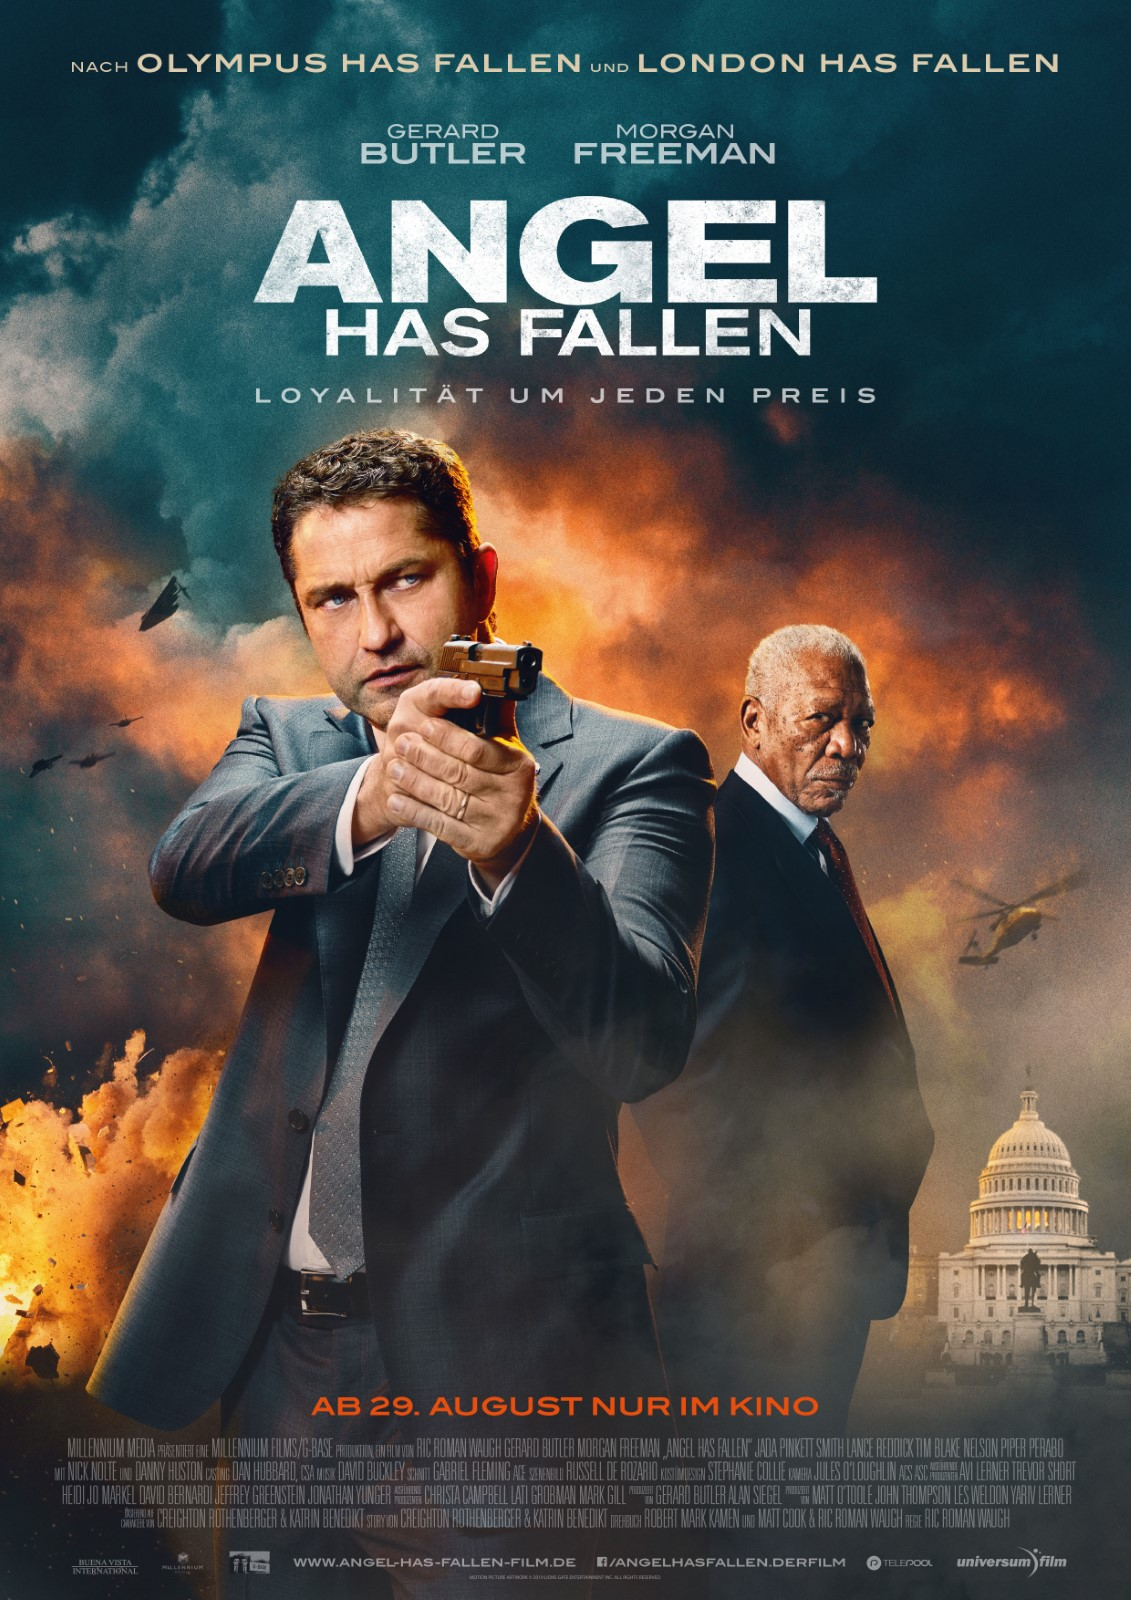 Angel Has Fallen 2019 Hindi ORG Dual Audio 720p BluRay ESubs 1.1GB x264 AAC